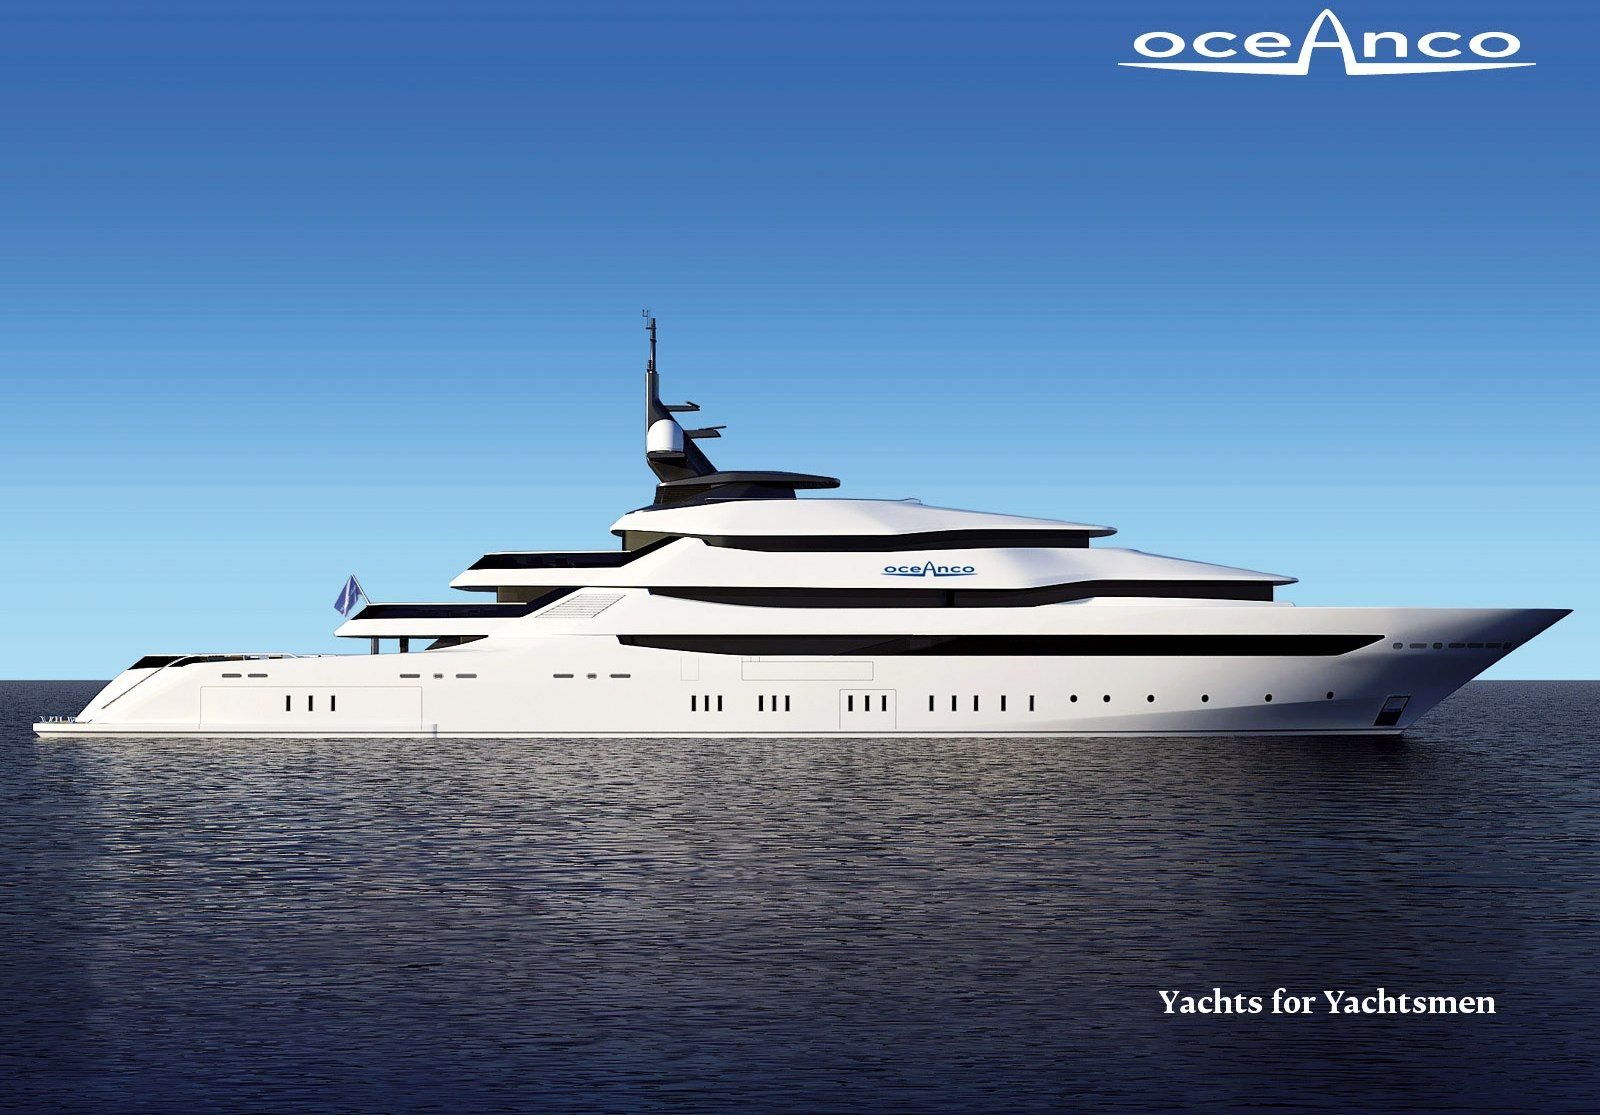 Oceanco Superyacht Wallpaper Superyachts News Luxury Yachts Charter Yachts For Sale Boats Luxury Luxury Yachts Yacht Boat